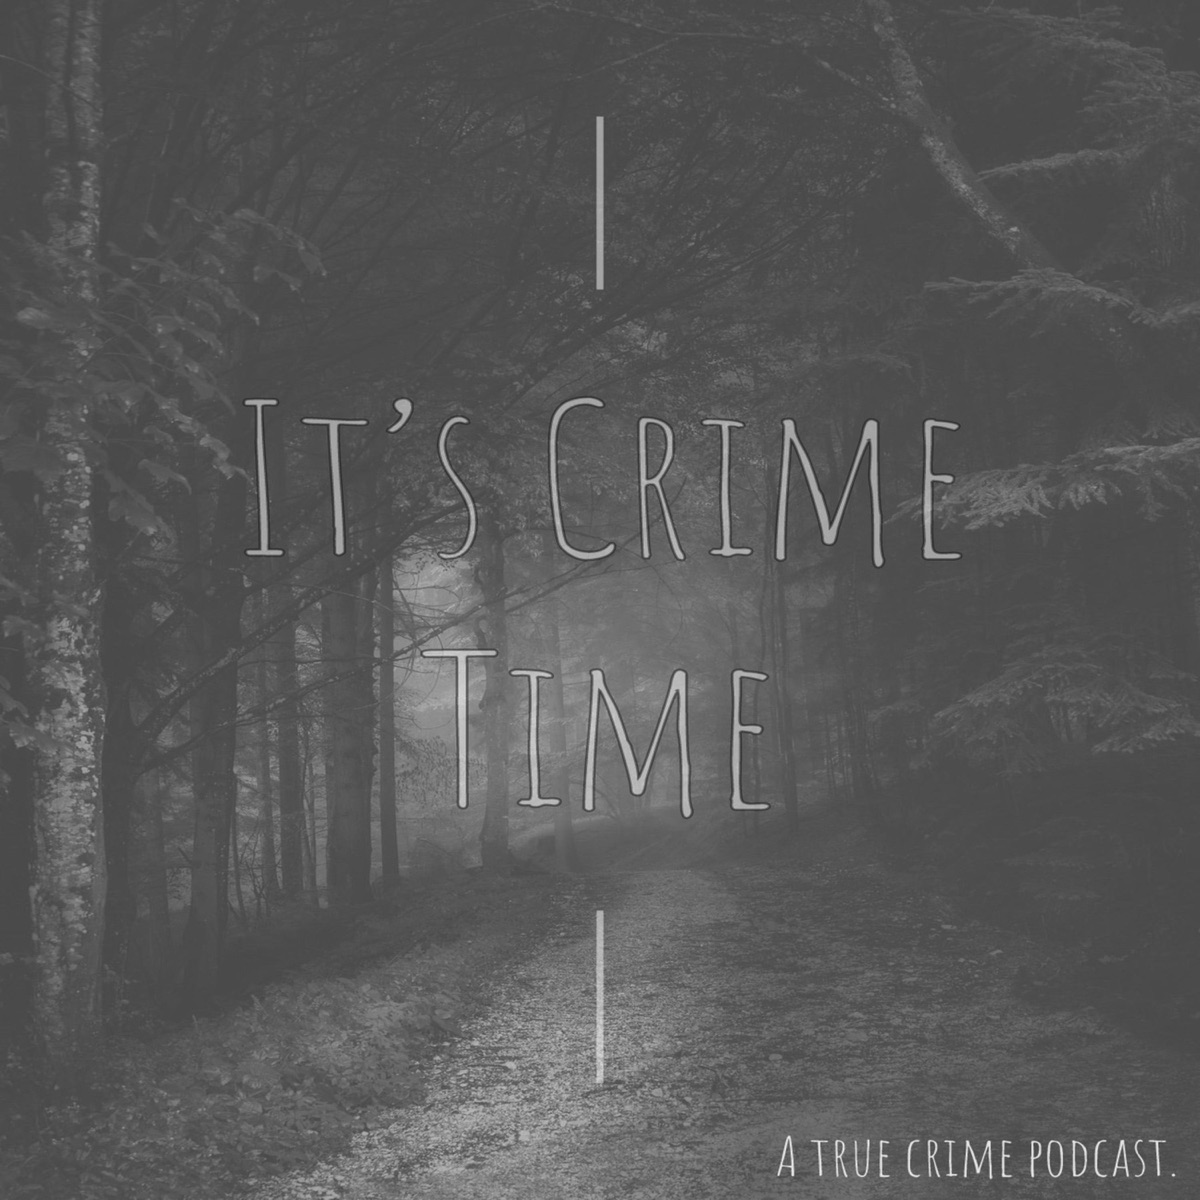 It's Crime Time